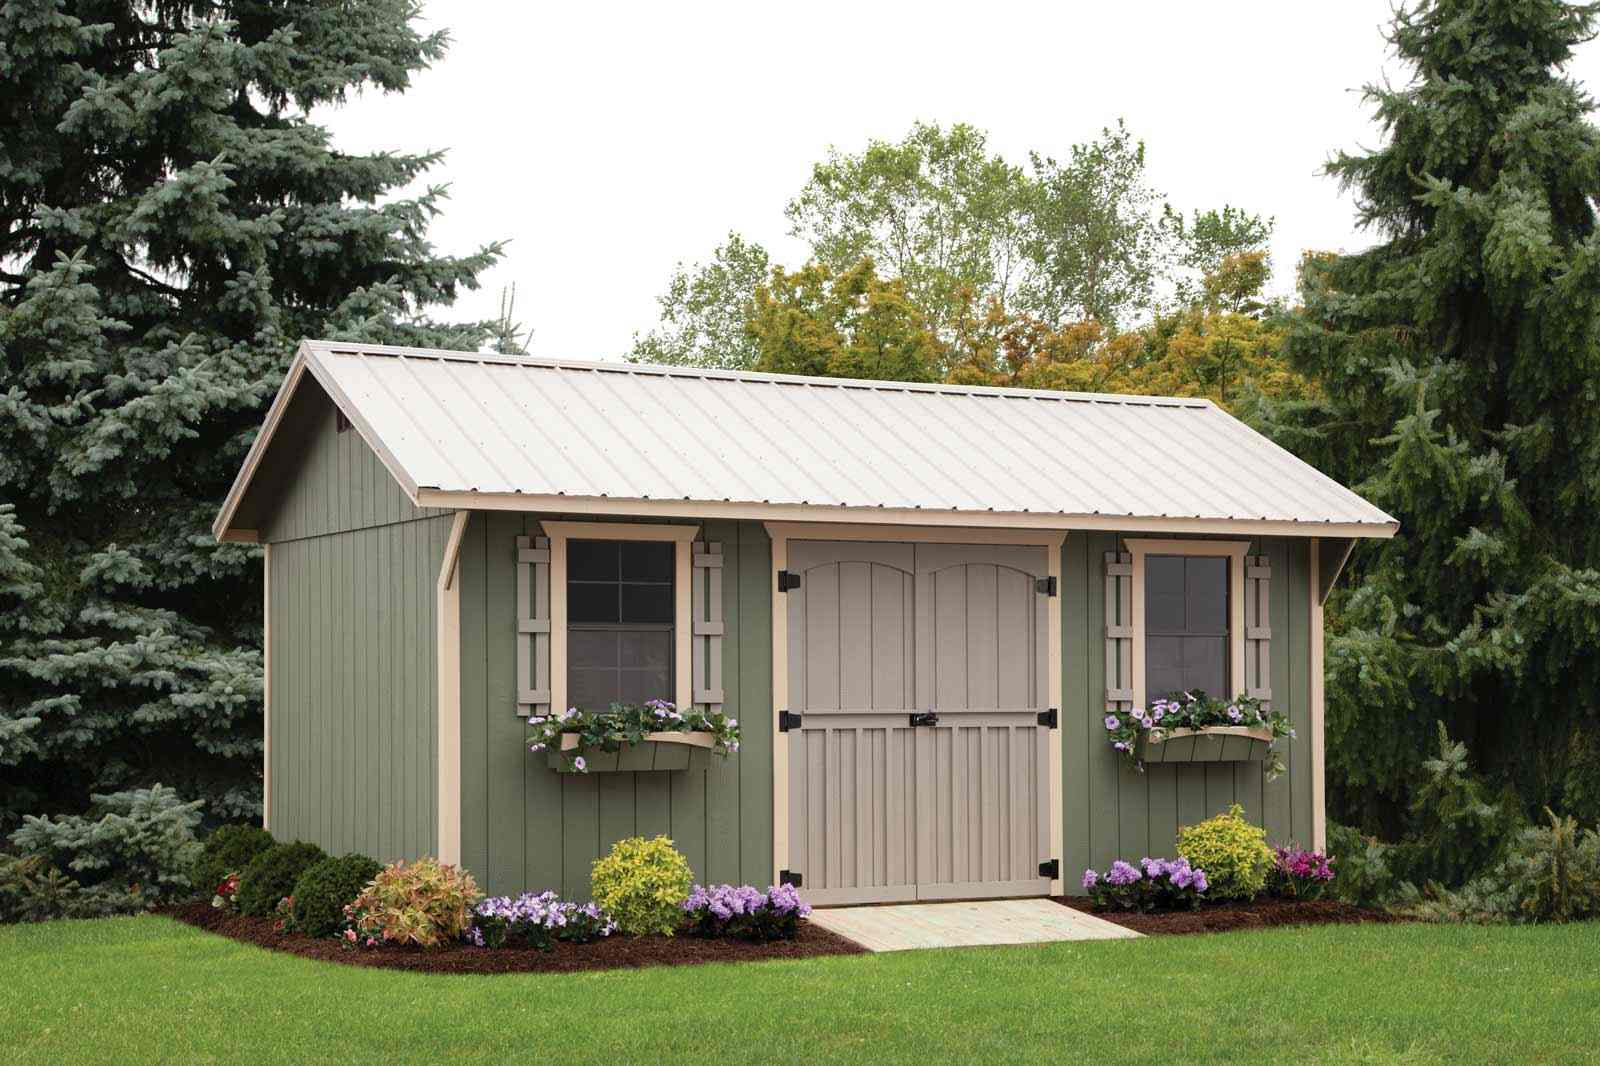 Tiny storage shed houses 12 x 12 storage sheds with for Carriage house shed